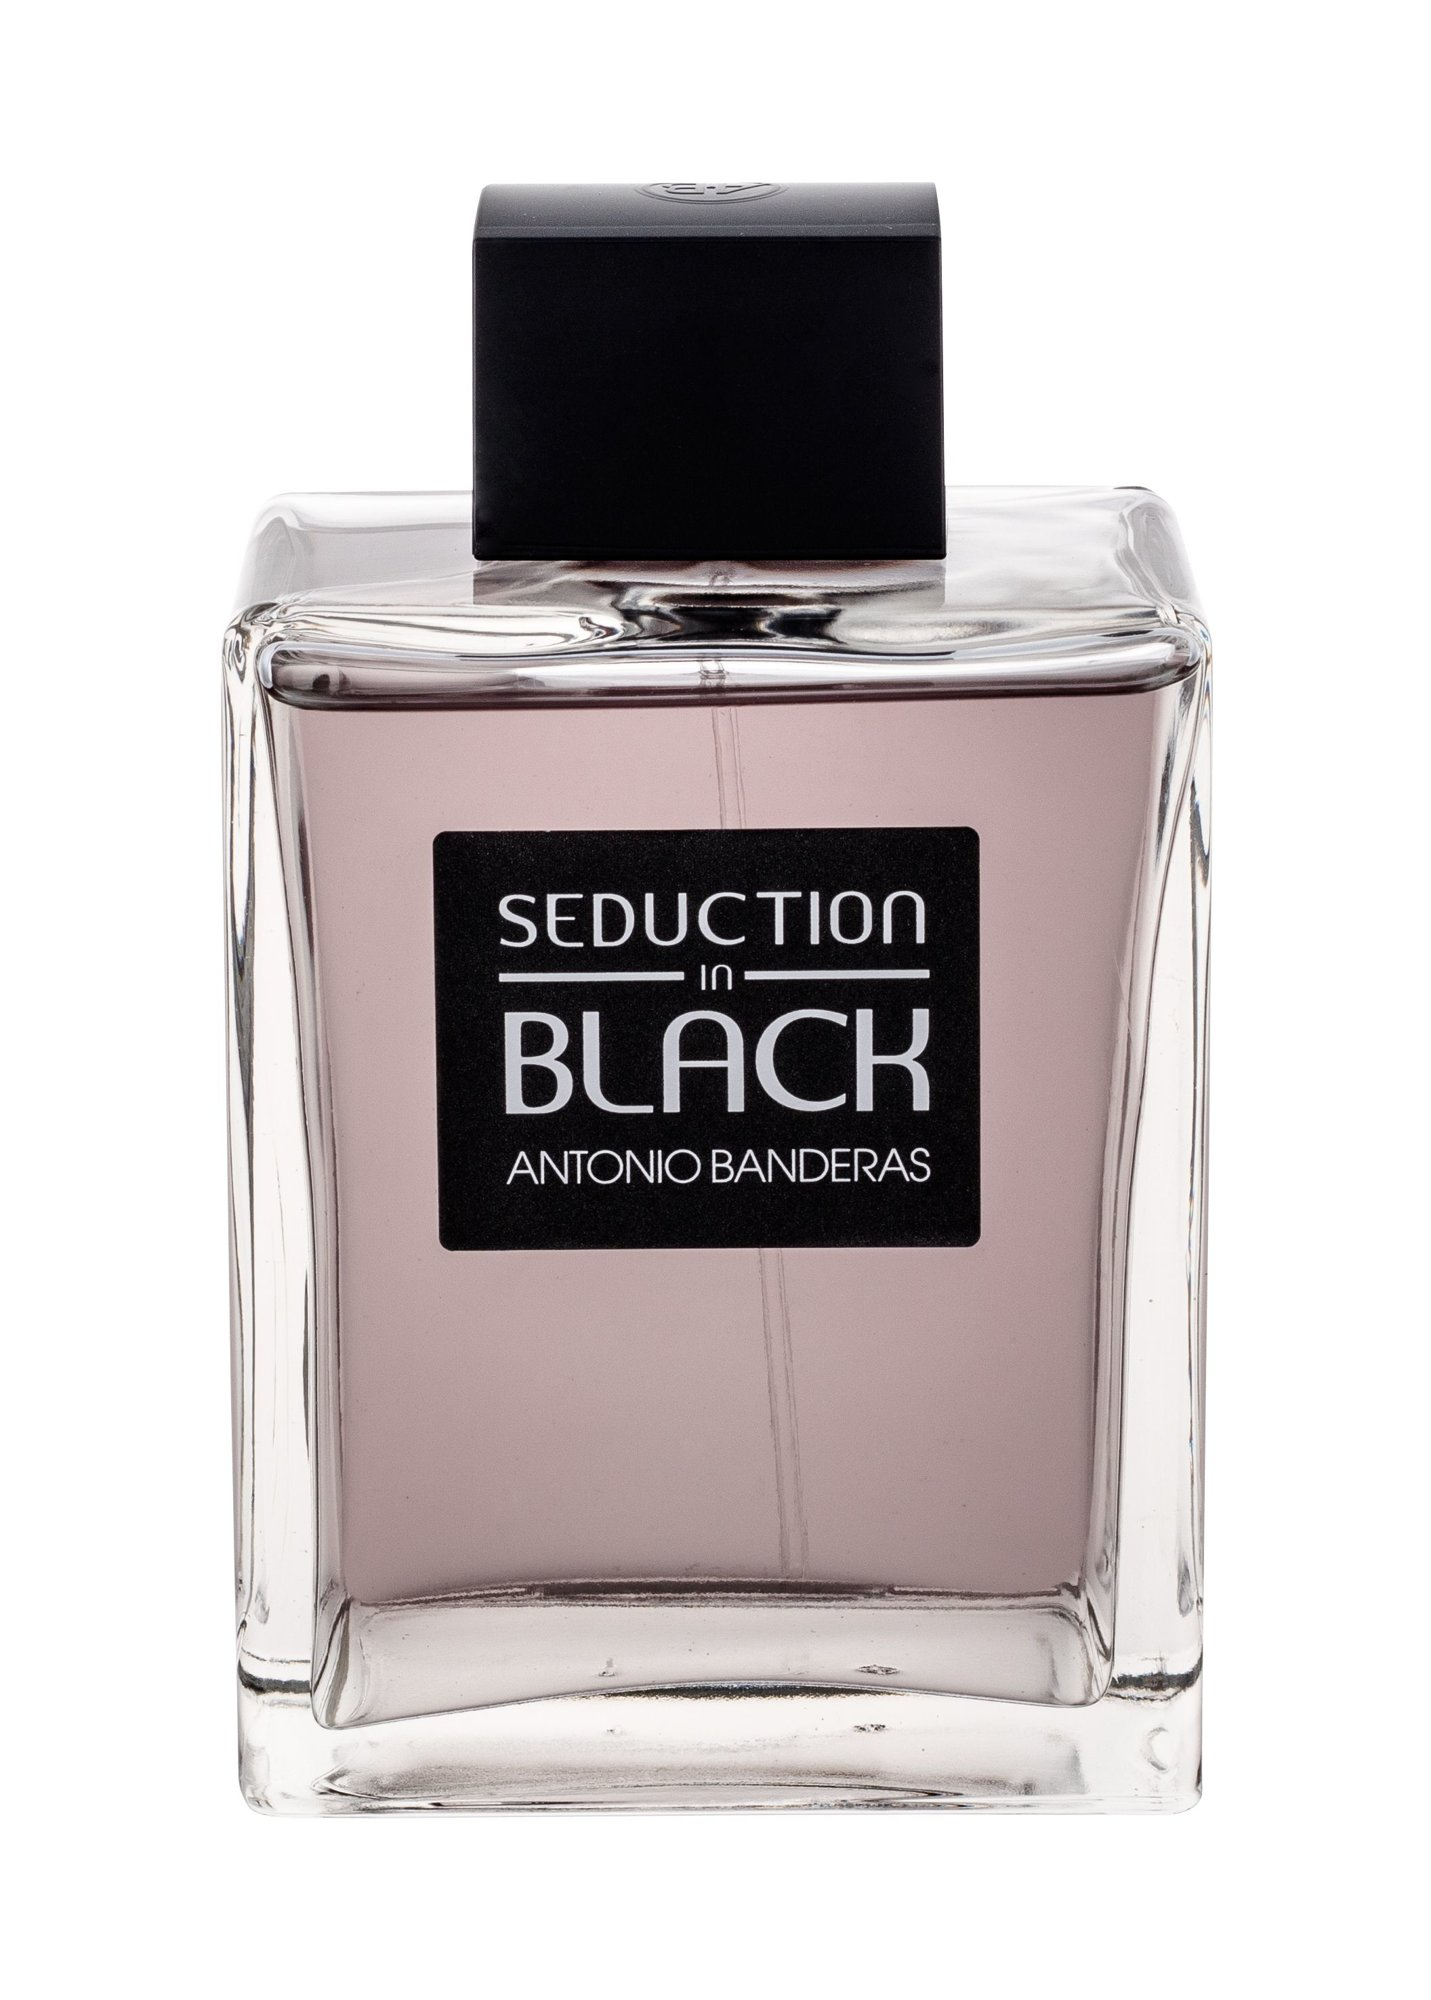 Antonio Banderas Seduction in Black  Toaletní voda, M, 200 ml